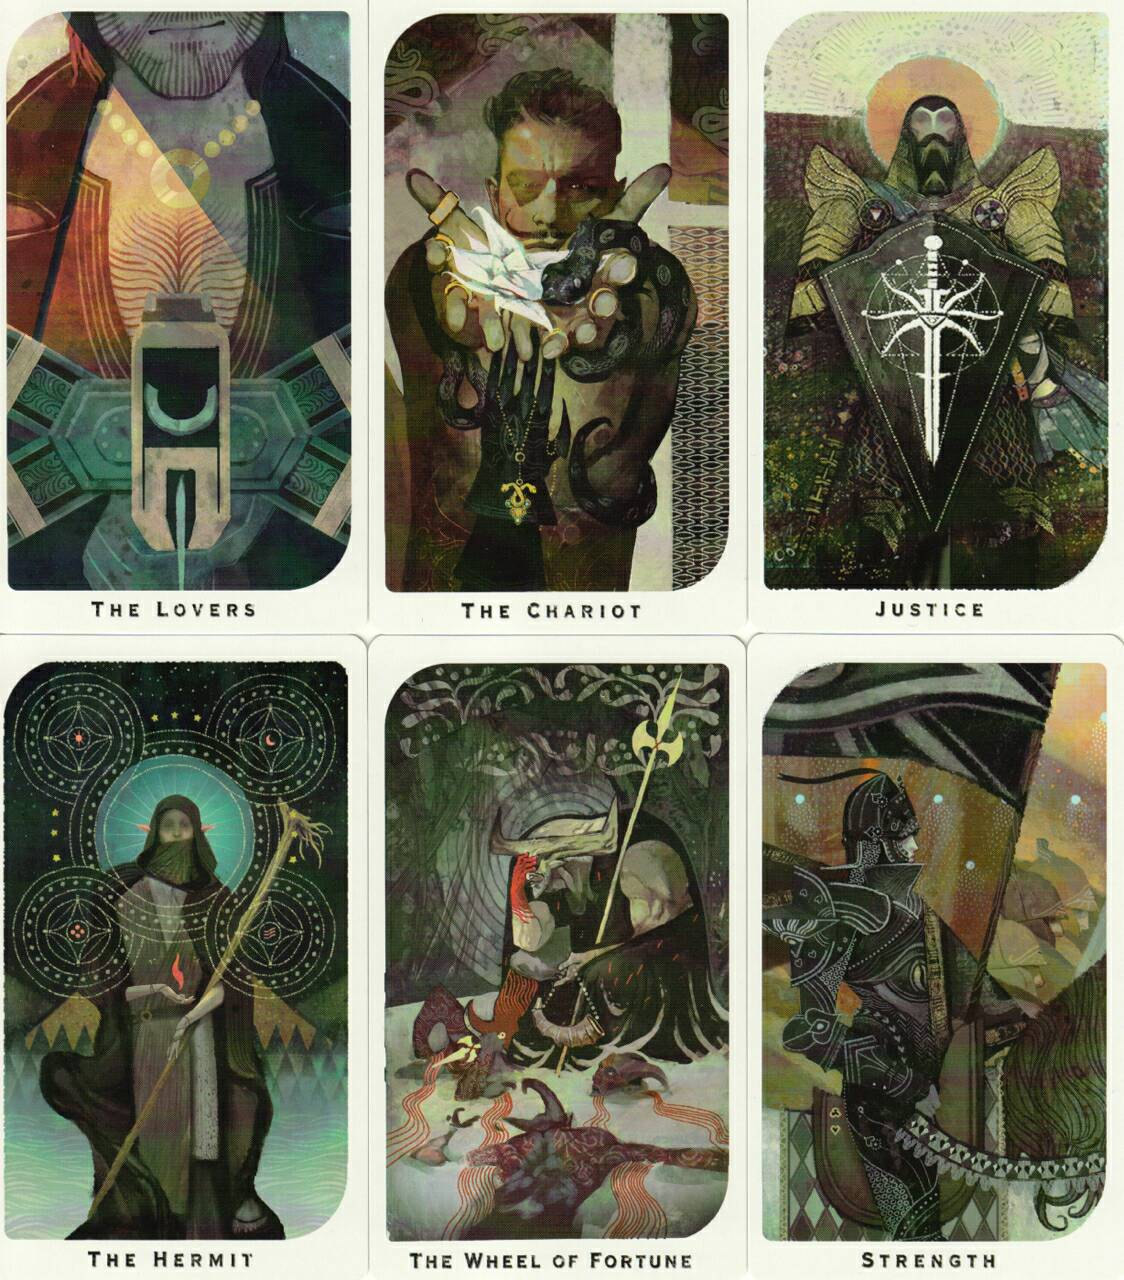 Dragon Age Inquisition Arcana Tarot deck